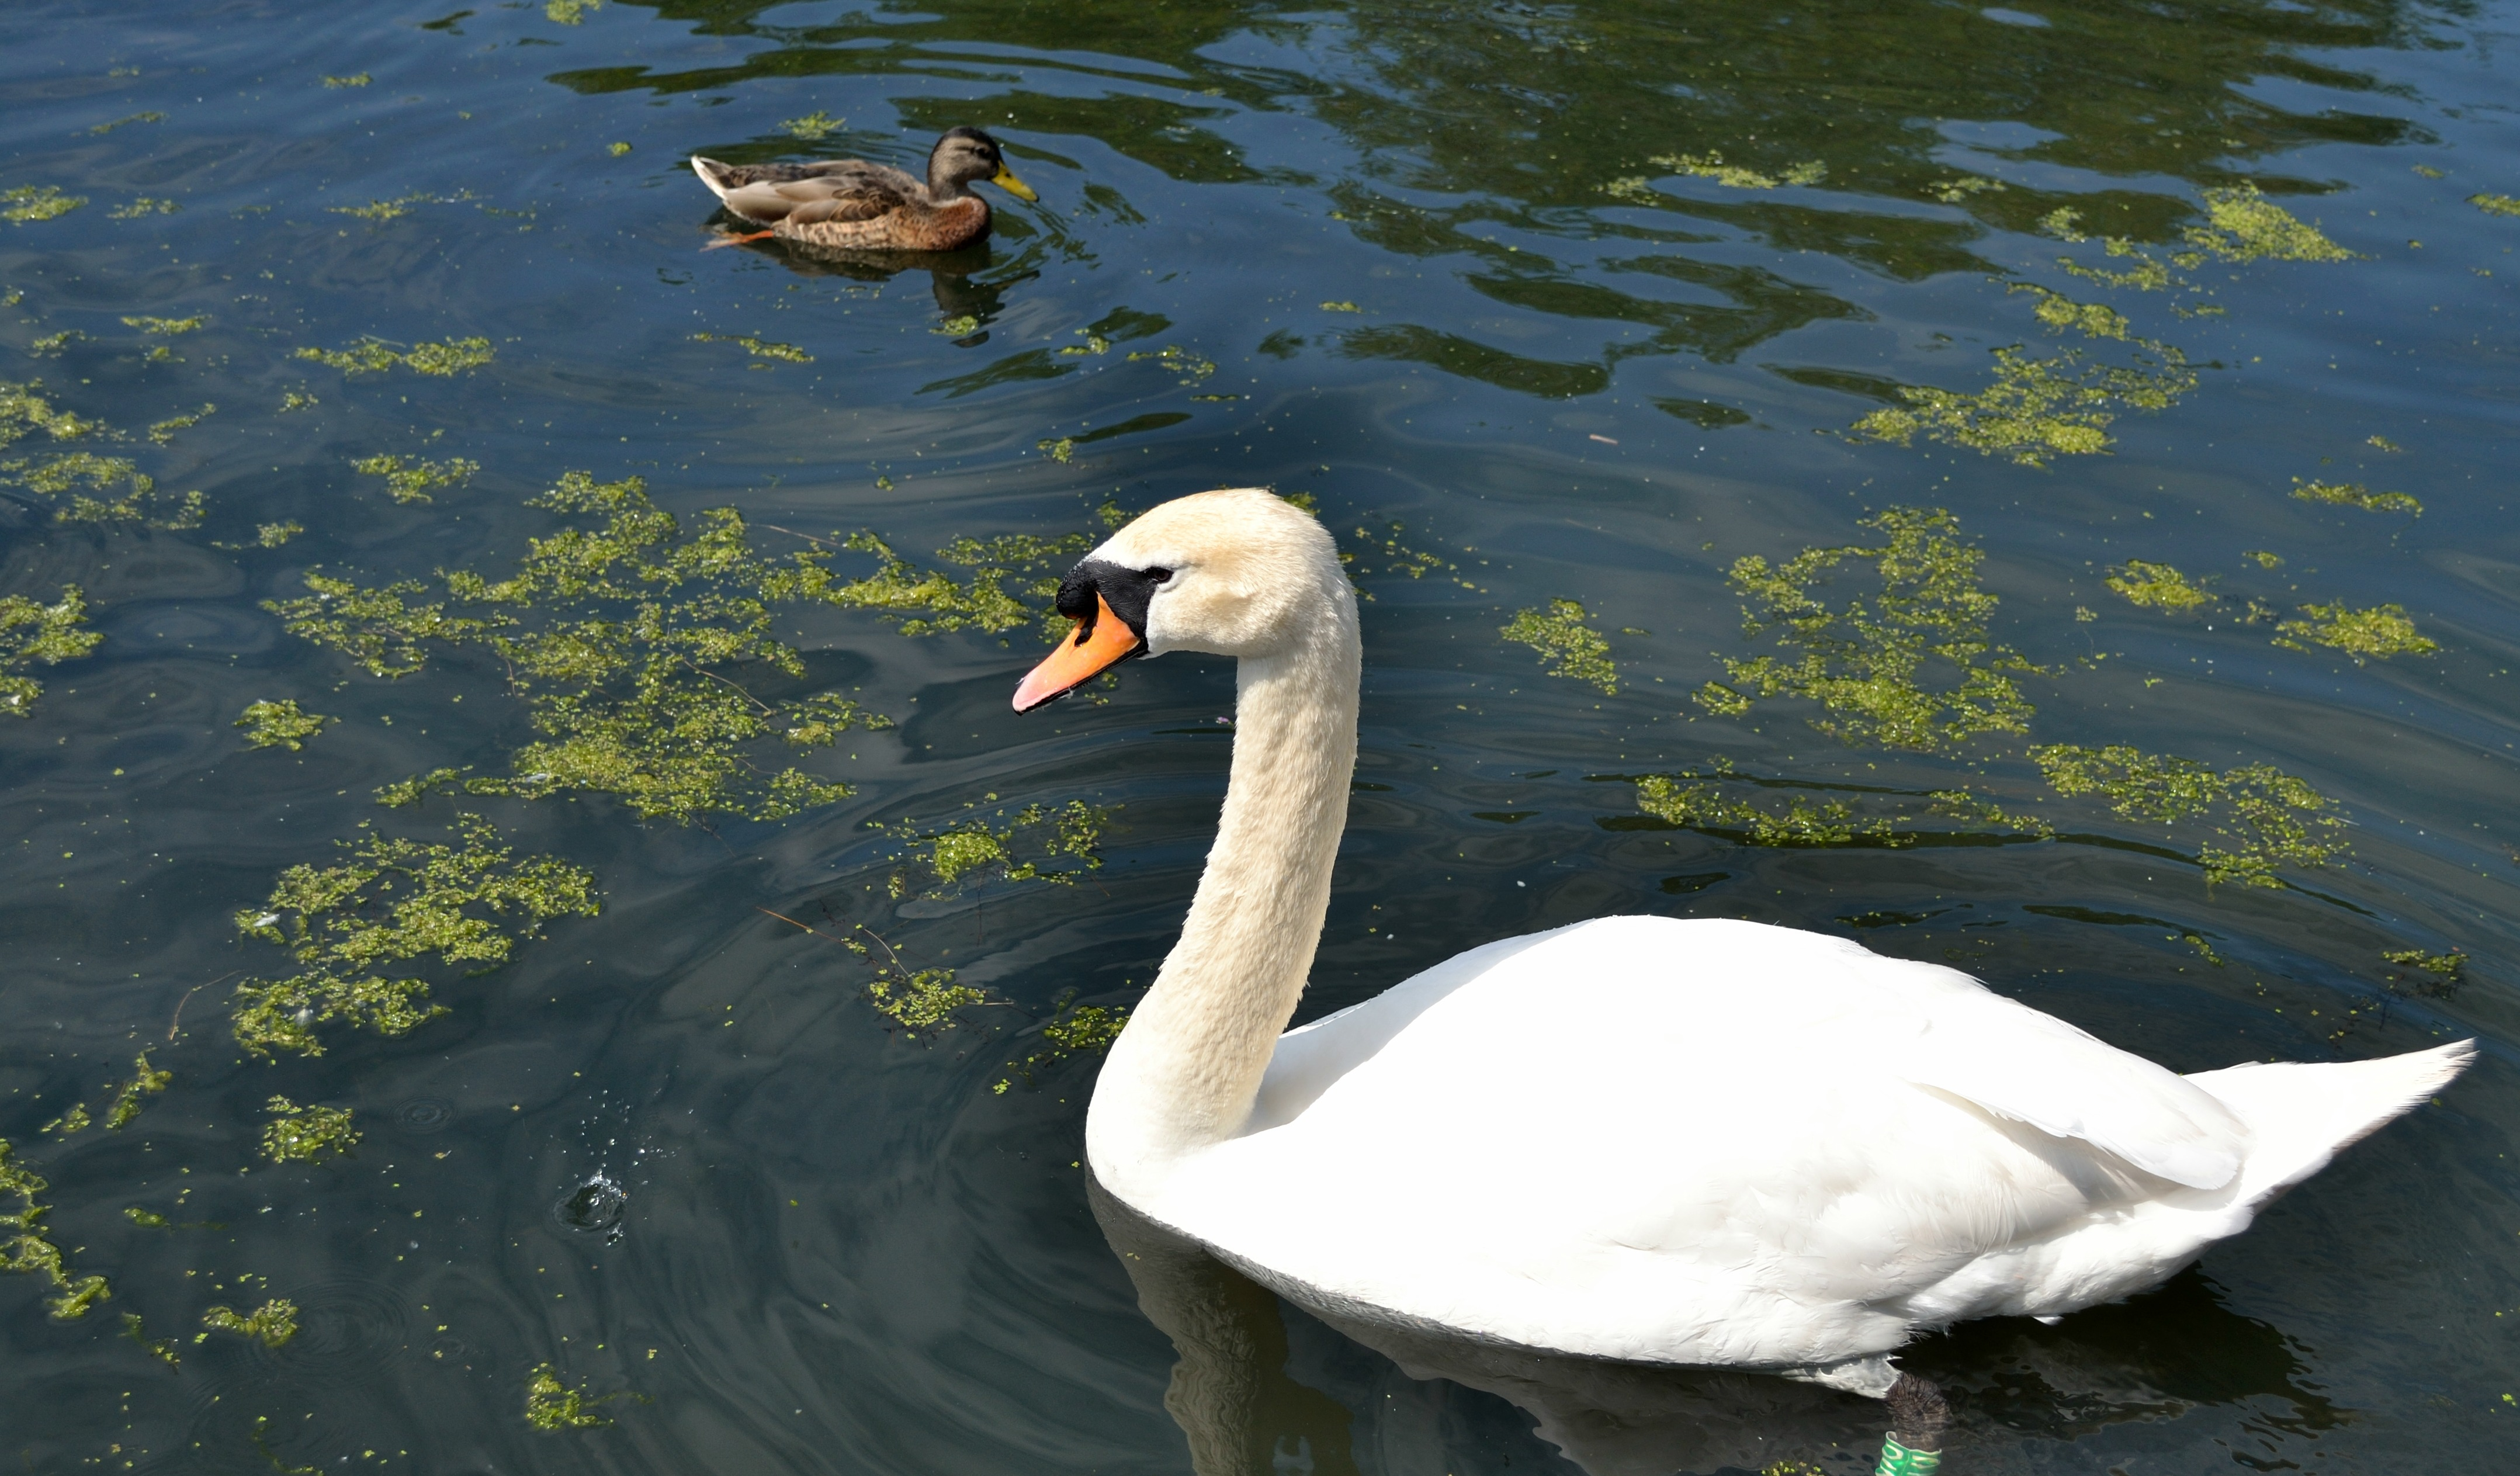 Swans & ducks at Figgate Park, Portobello.